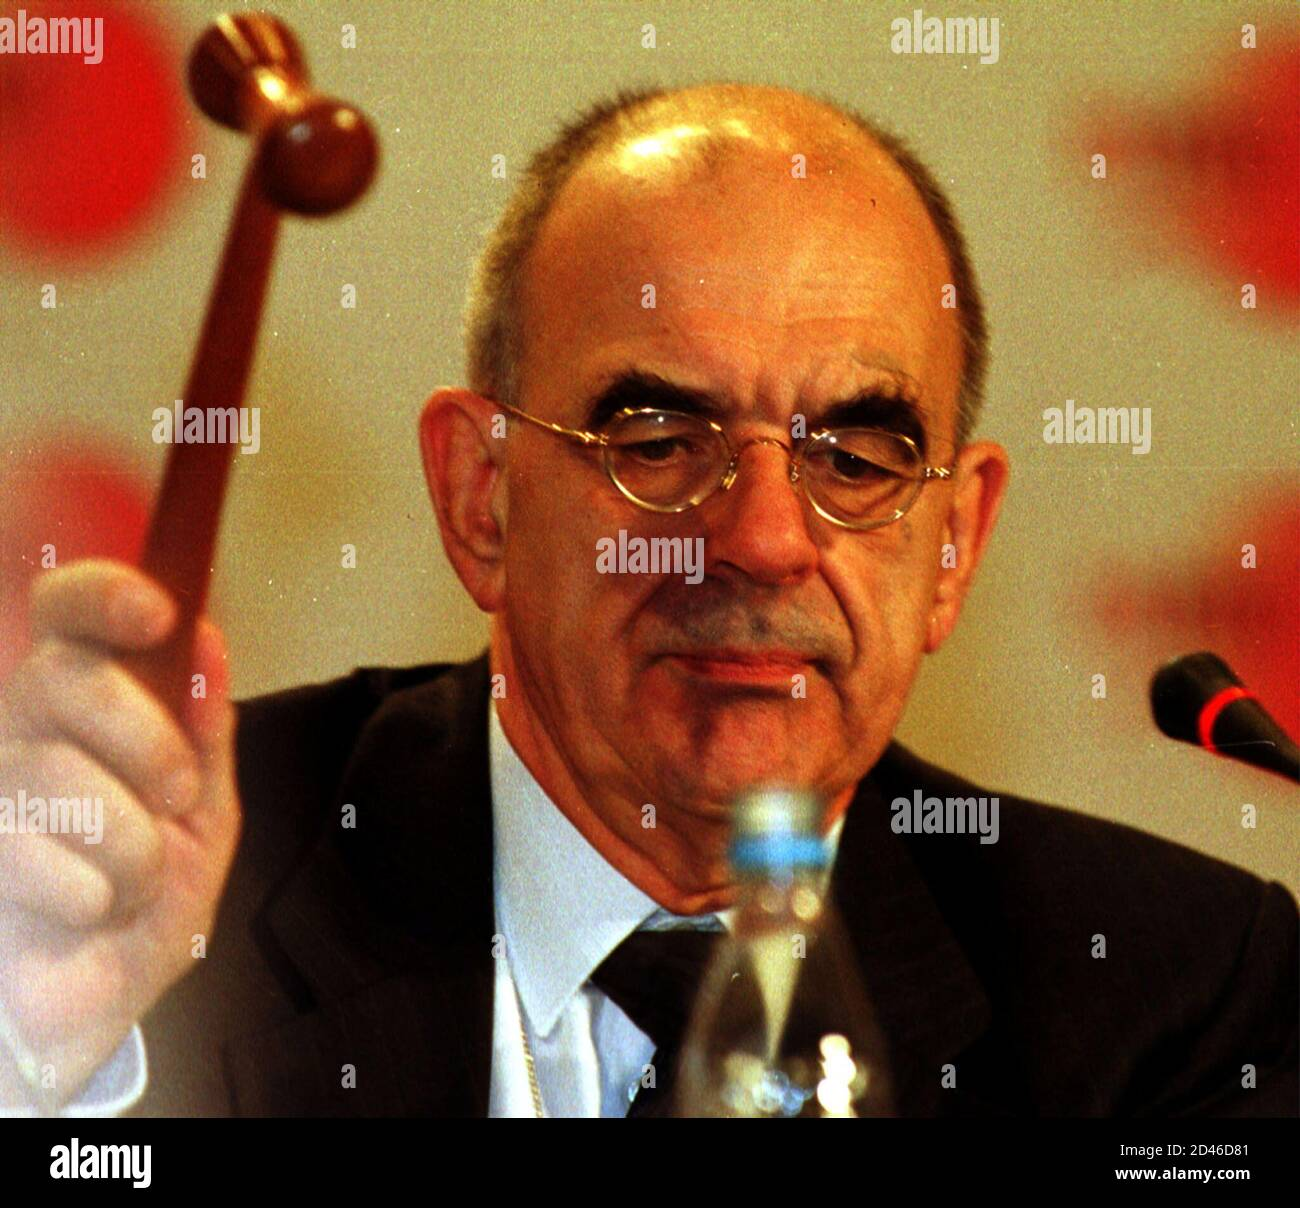 Jan Pronk High Resolution Stock Photography And Images Alamy